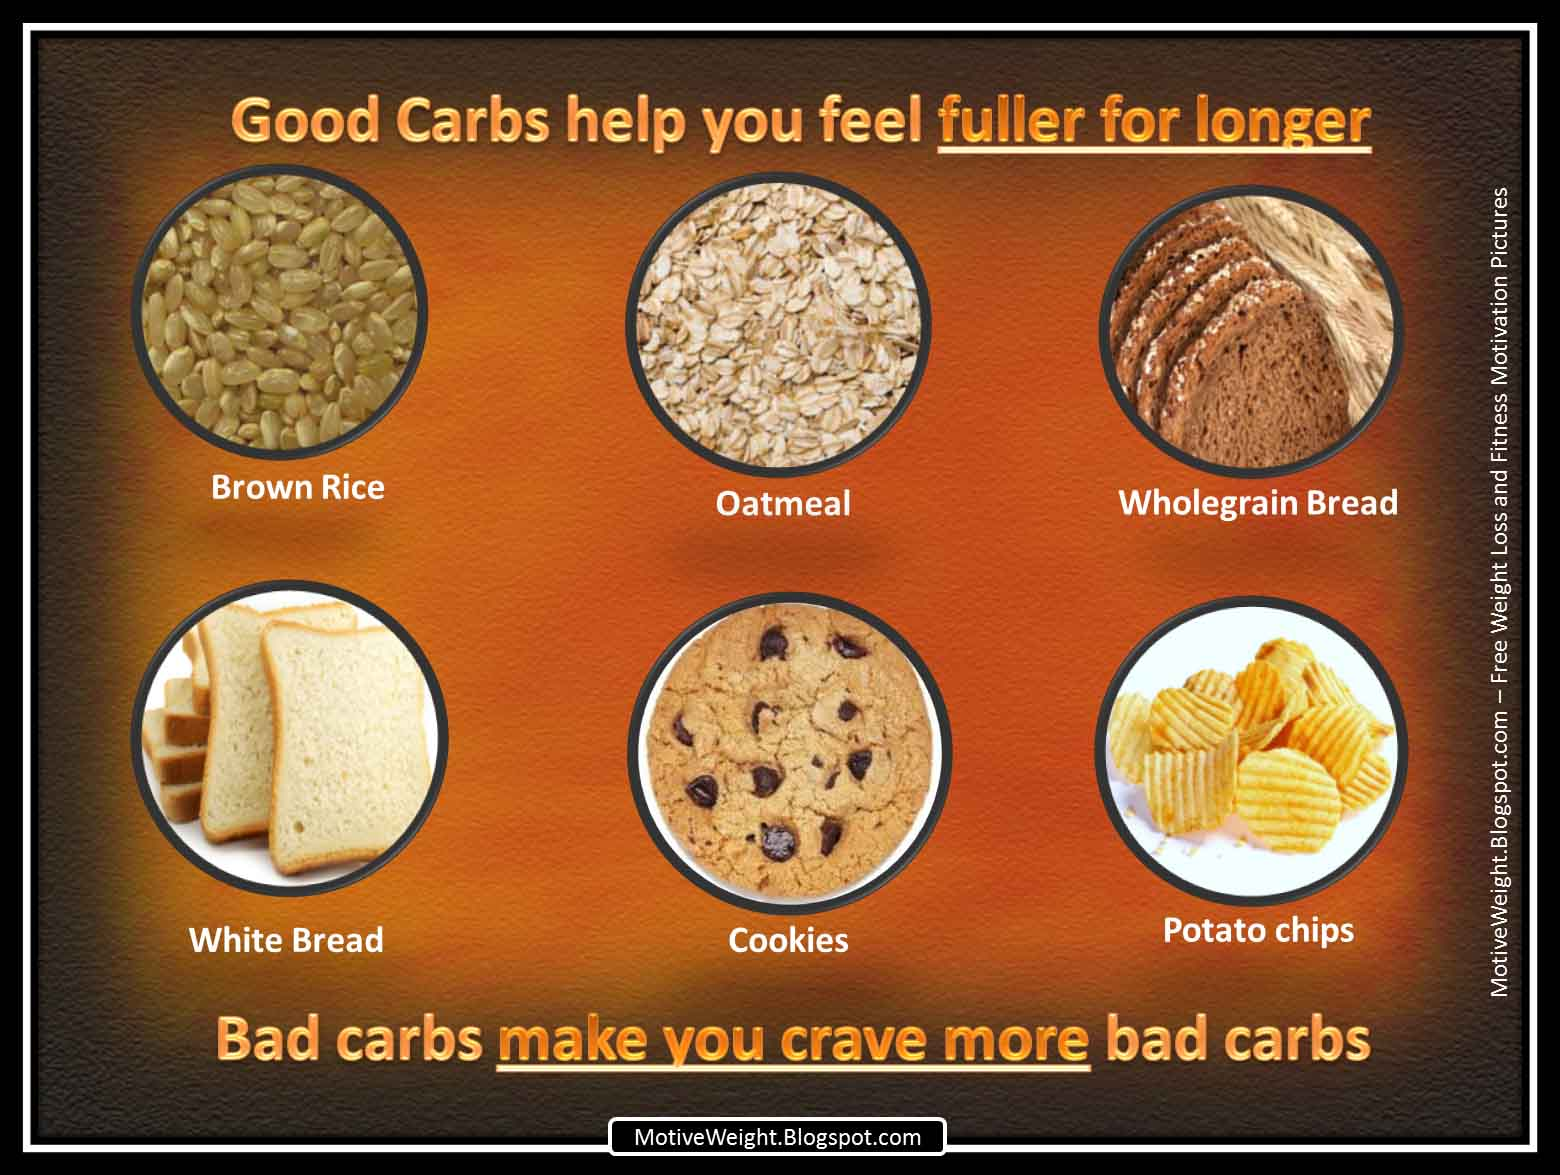 What Are Foods With Good Sources Of Carbs